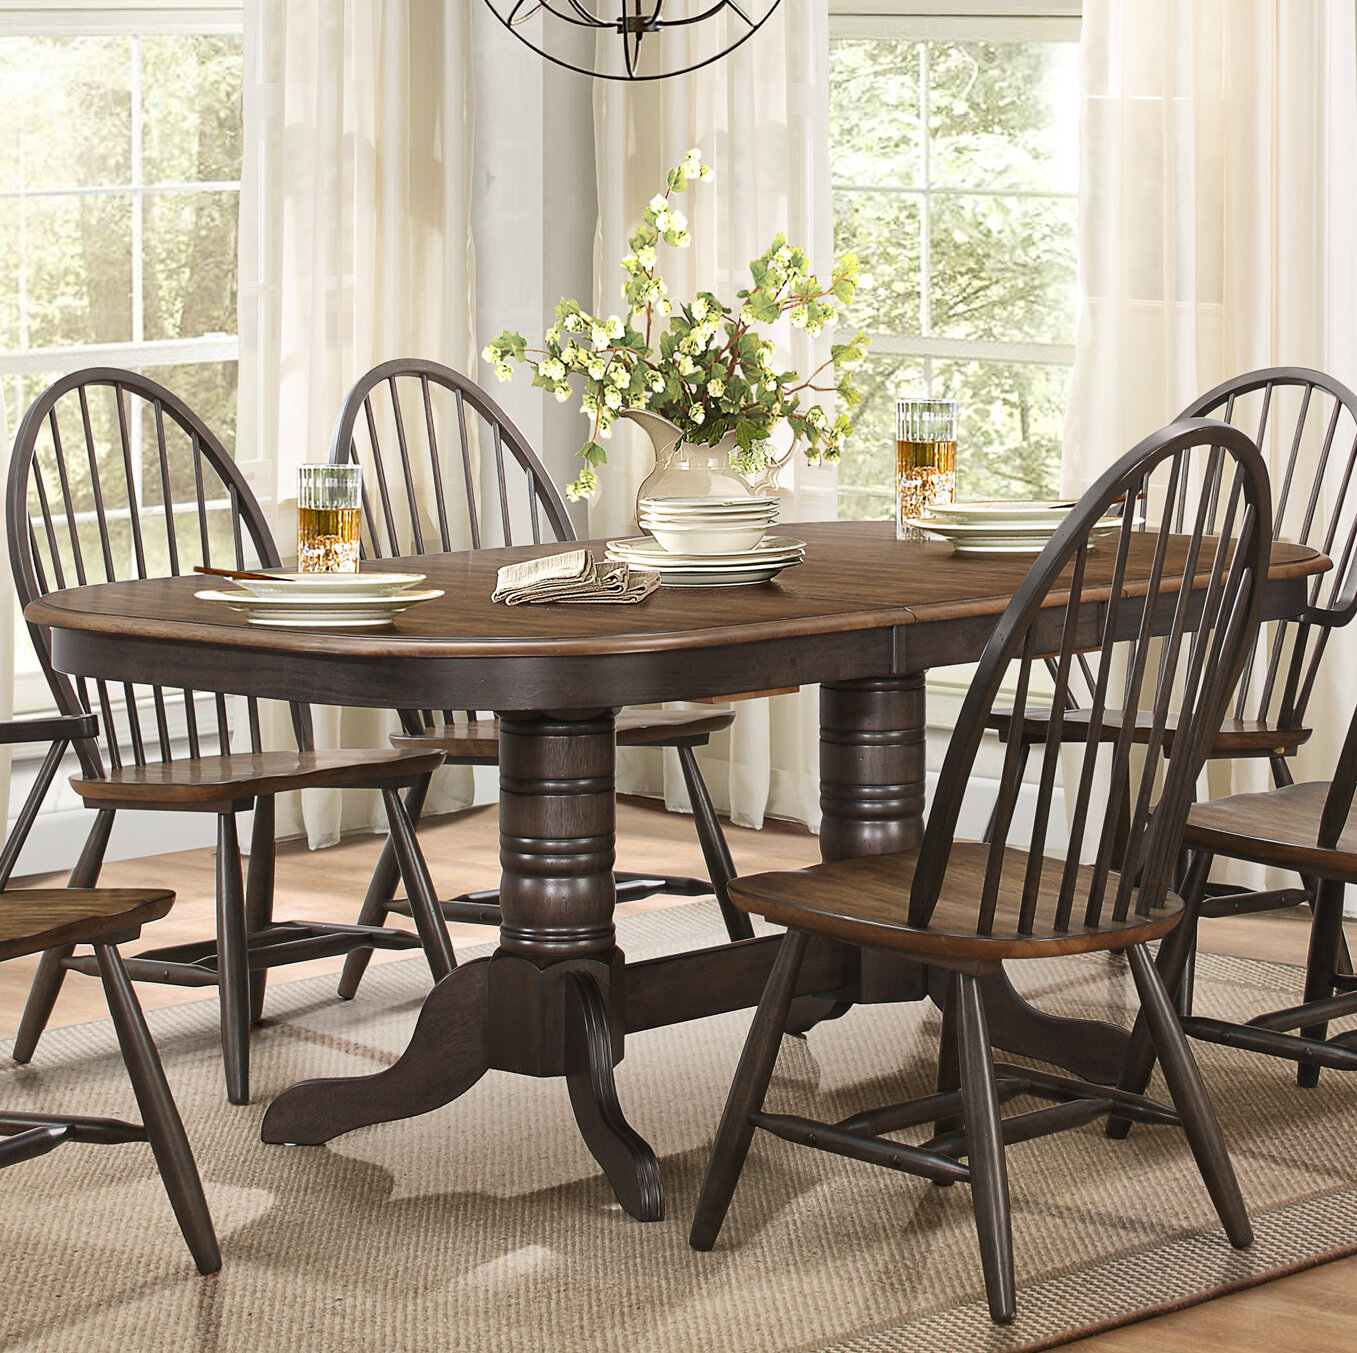 Gracie Oaks Estefania Dining Table Reviews Wayfair